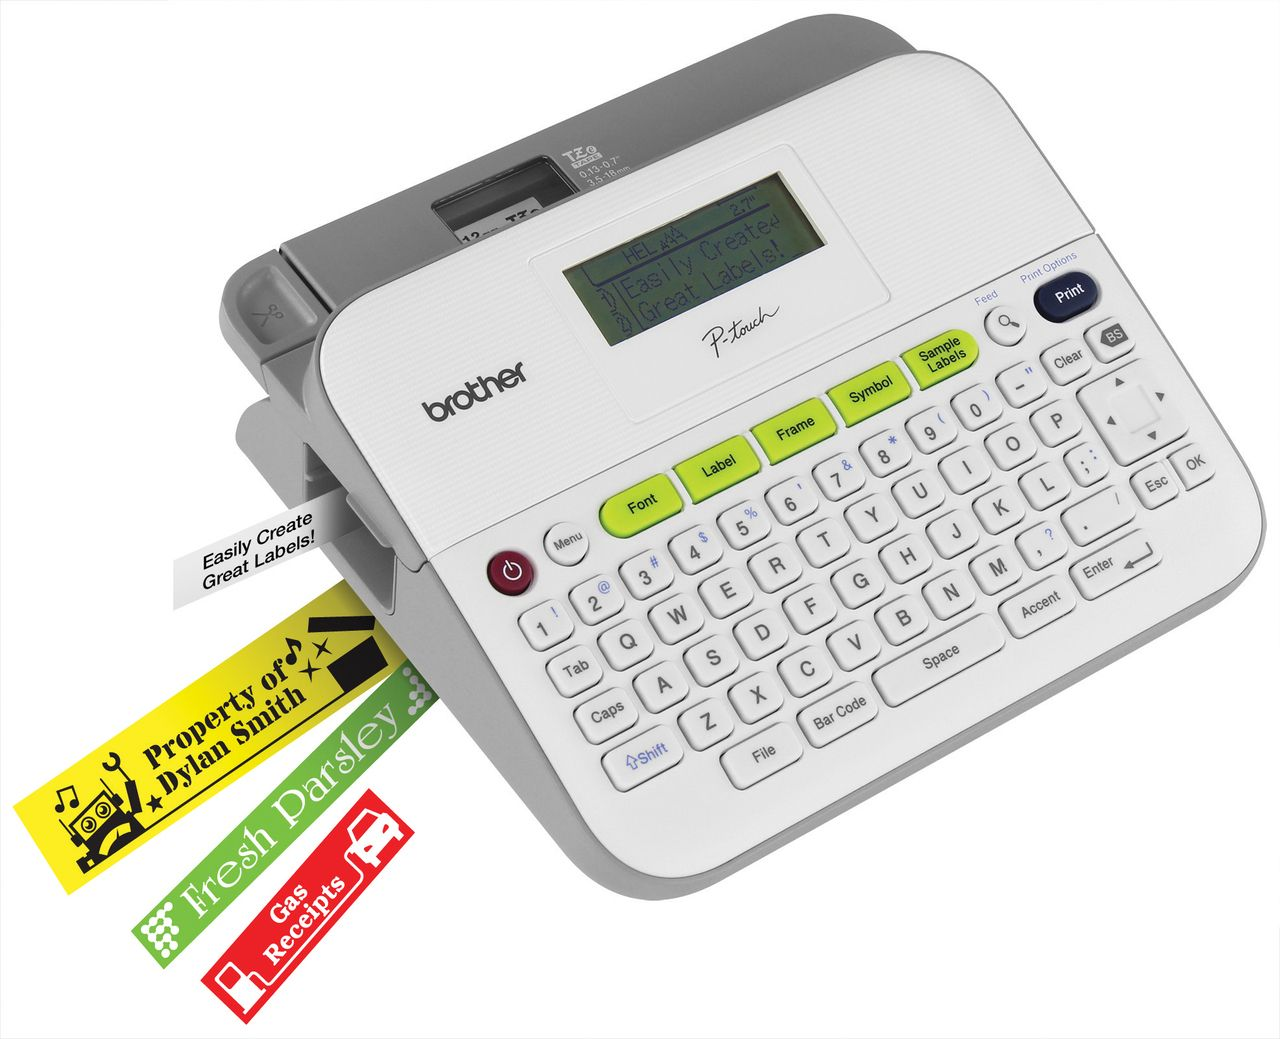 compact label maker uses durable laminated tze label tape with split back for easy application view text and layout before printing at office depot